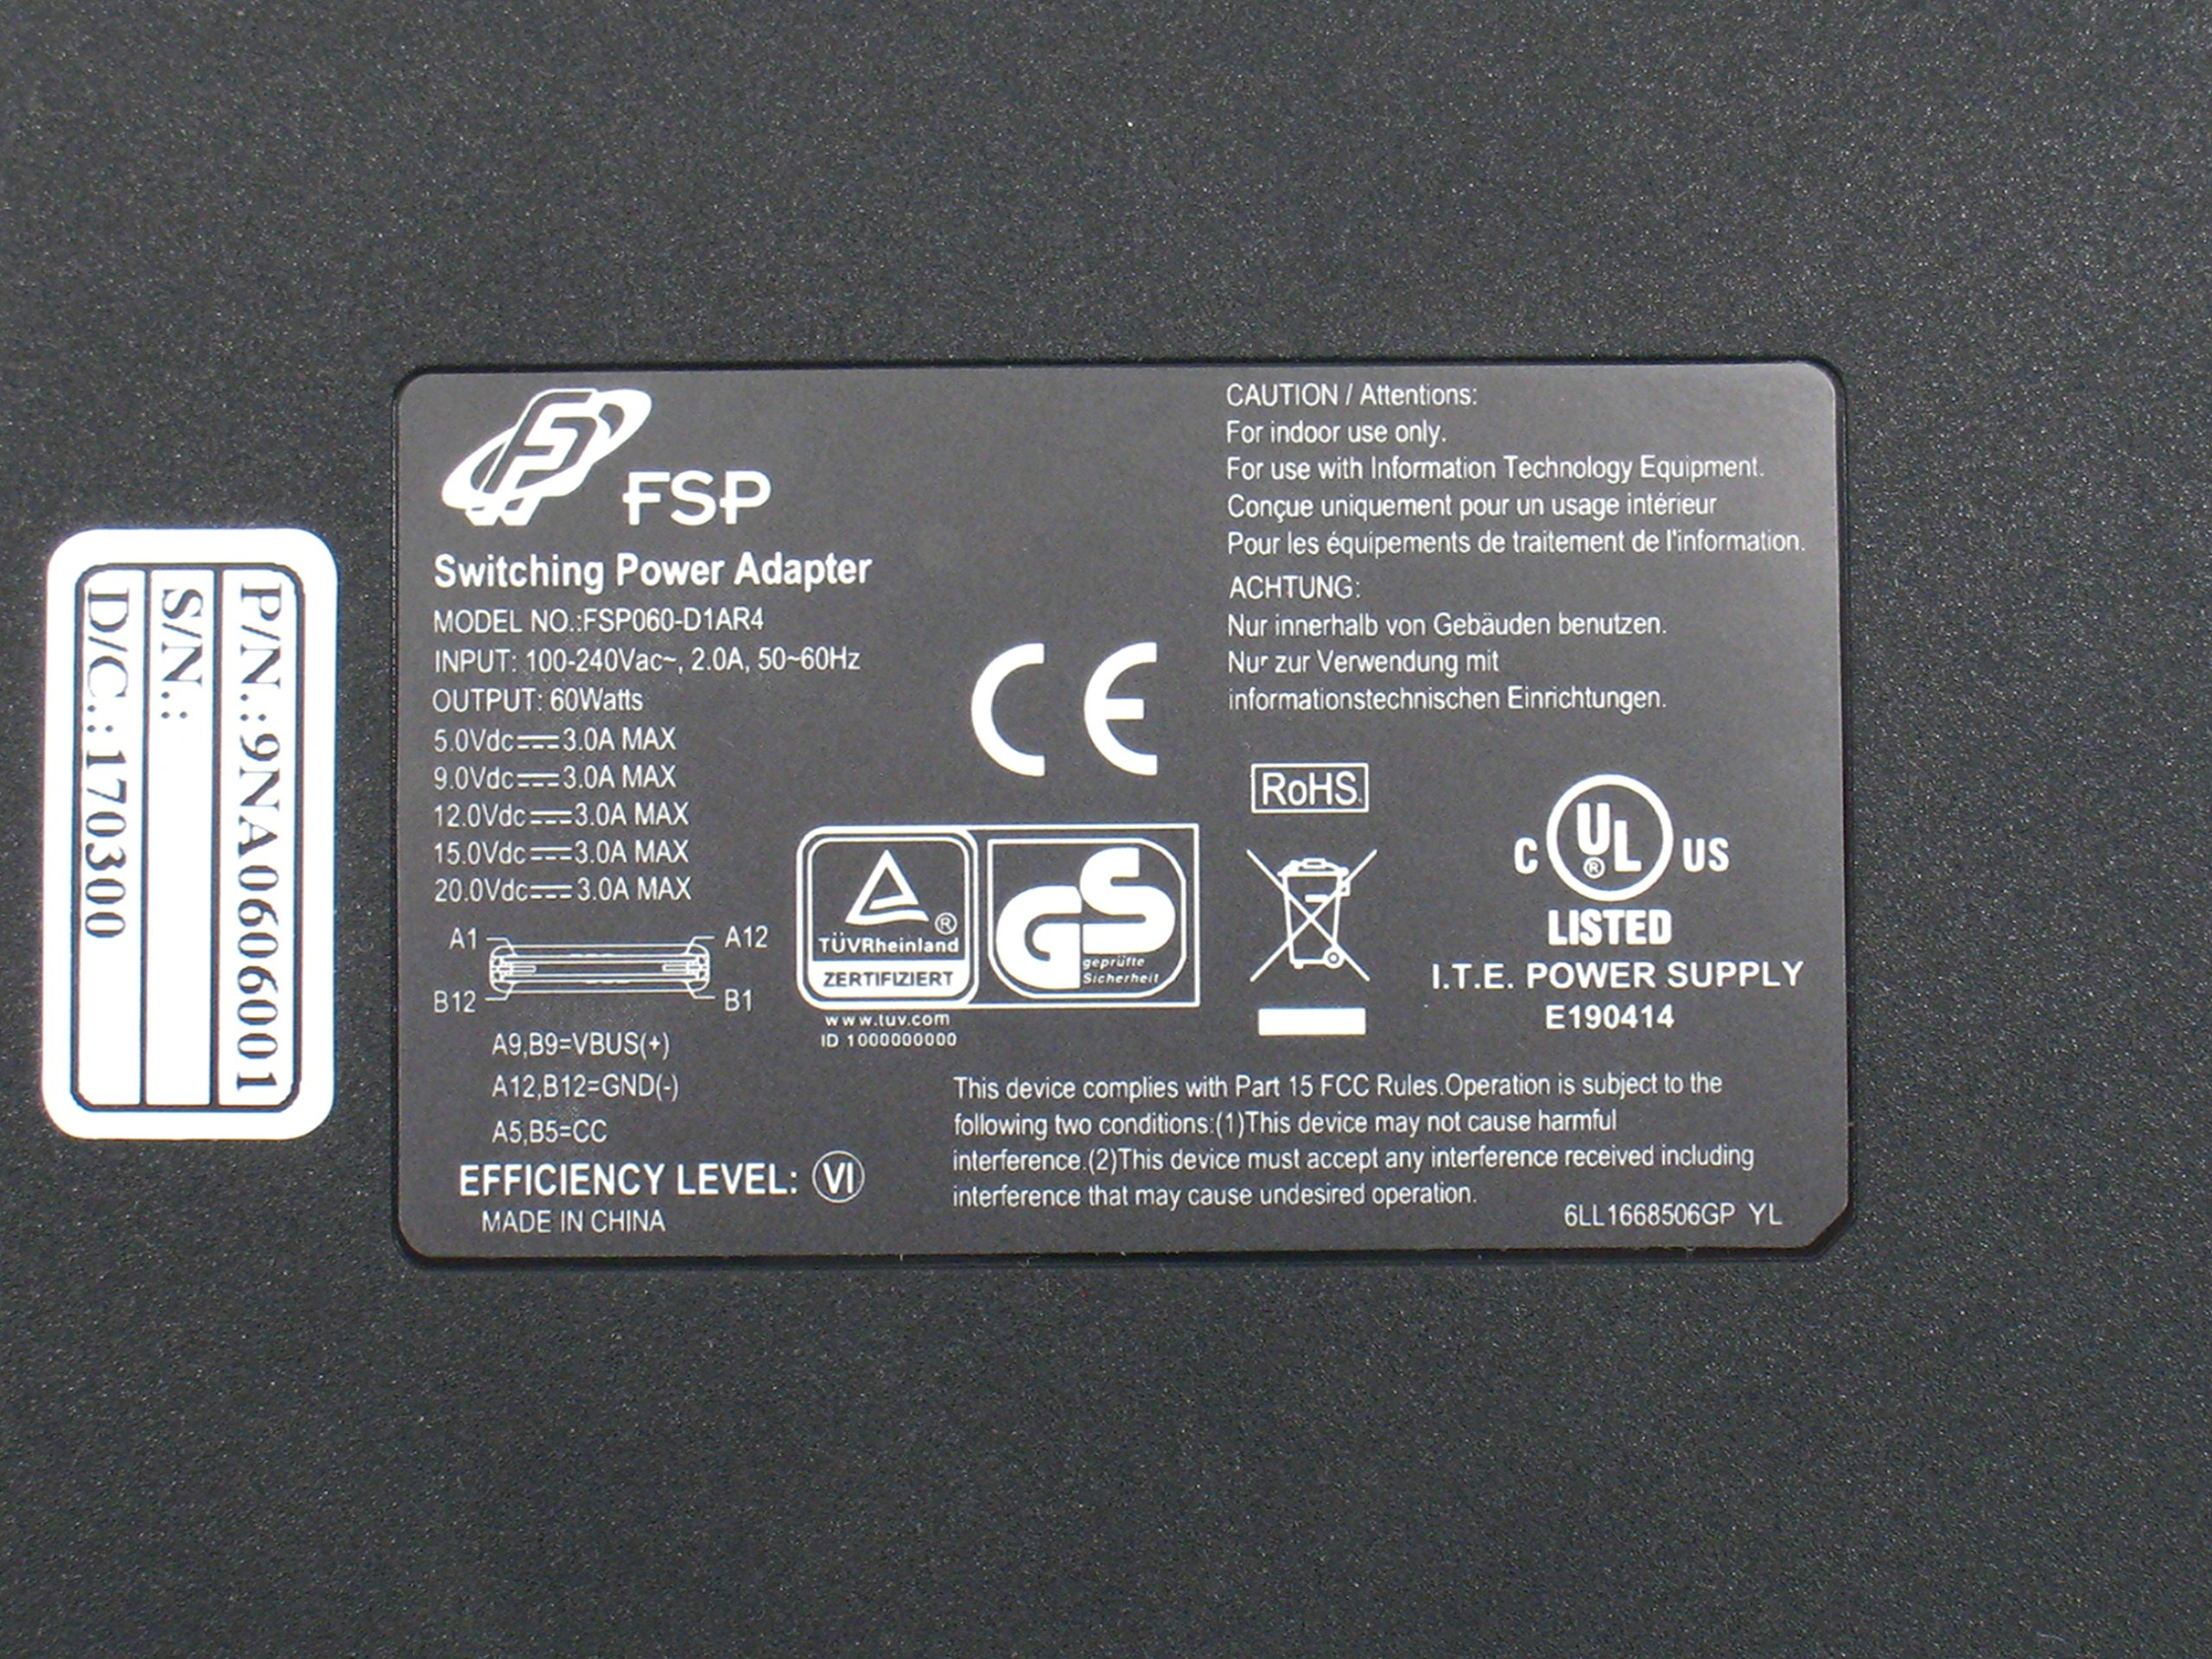 FSP USB-C PD 60W Slim/Compact Laptop Adapter for Macbook Pro 13'' (2015/16), HP Spectre X360/USB Type C Fast Charger for Samsung Galaxy, Google Pixel, Nintendo Switch and More (FSP060-D1AR4) by FSP (Image #5)